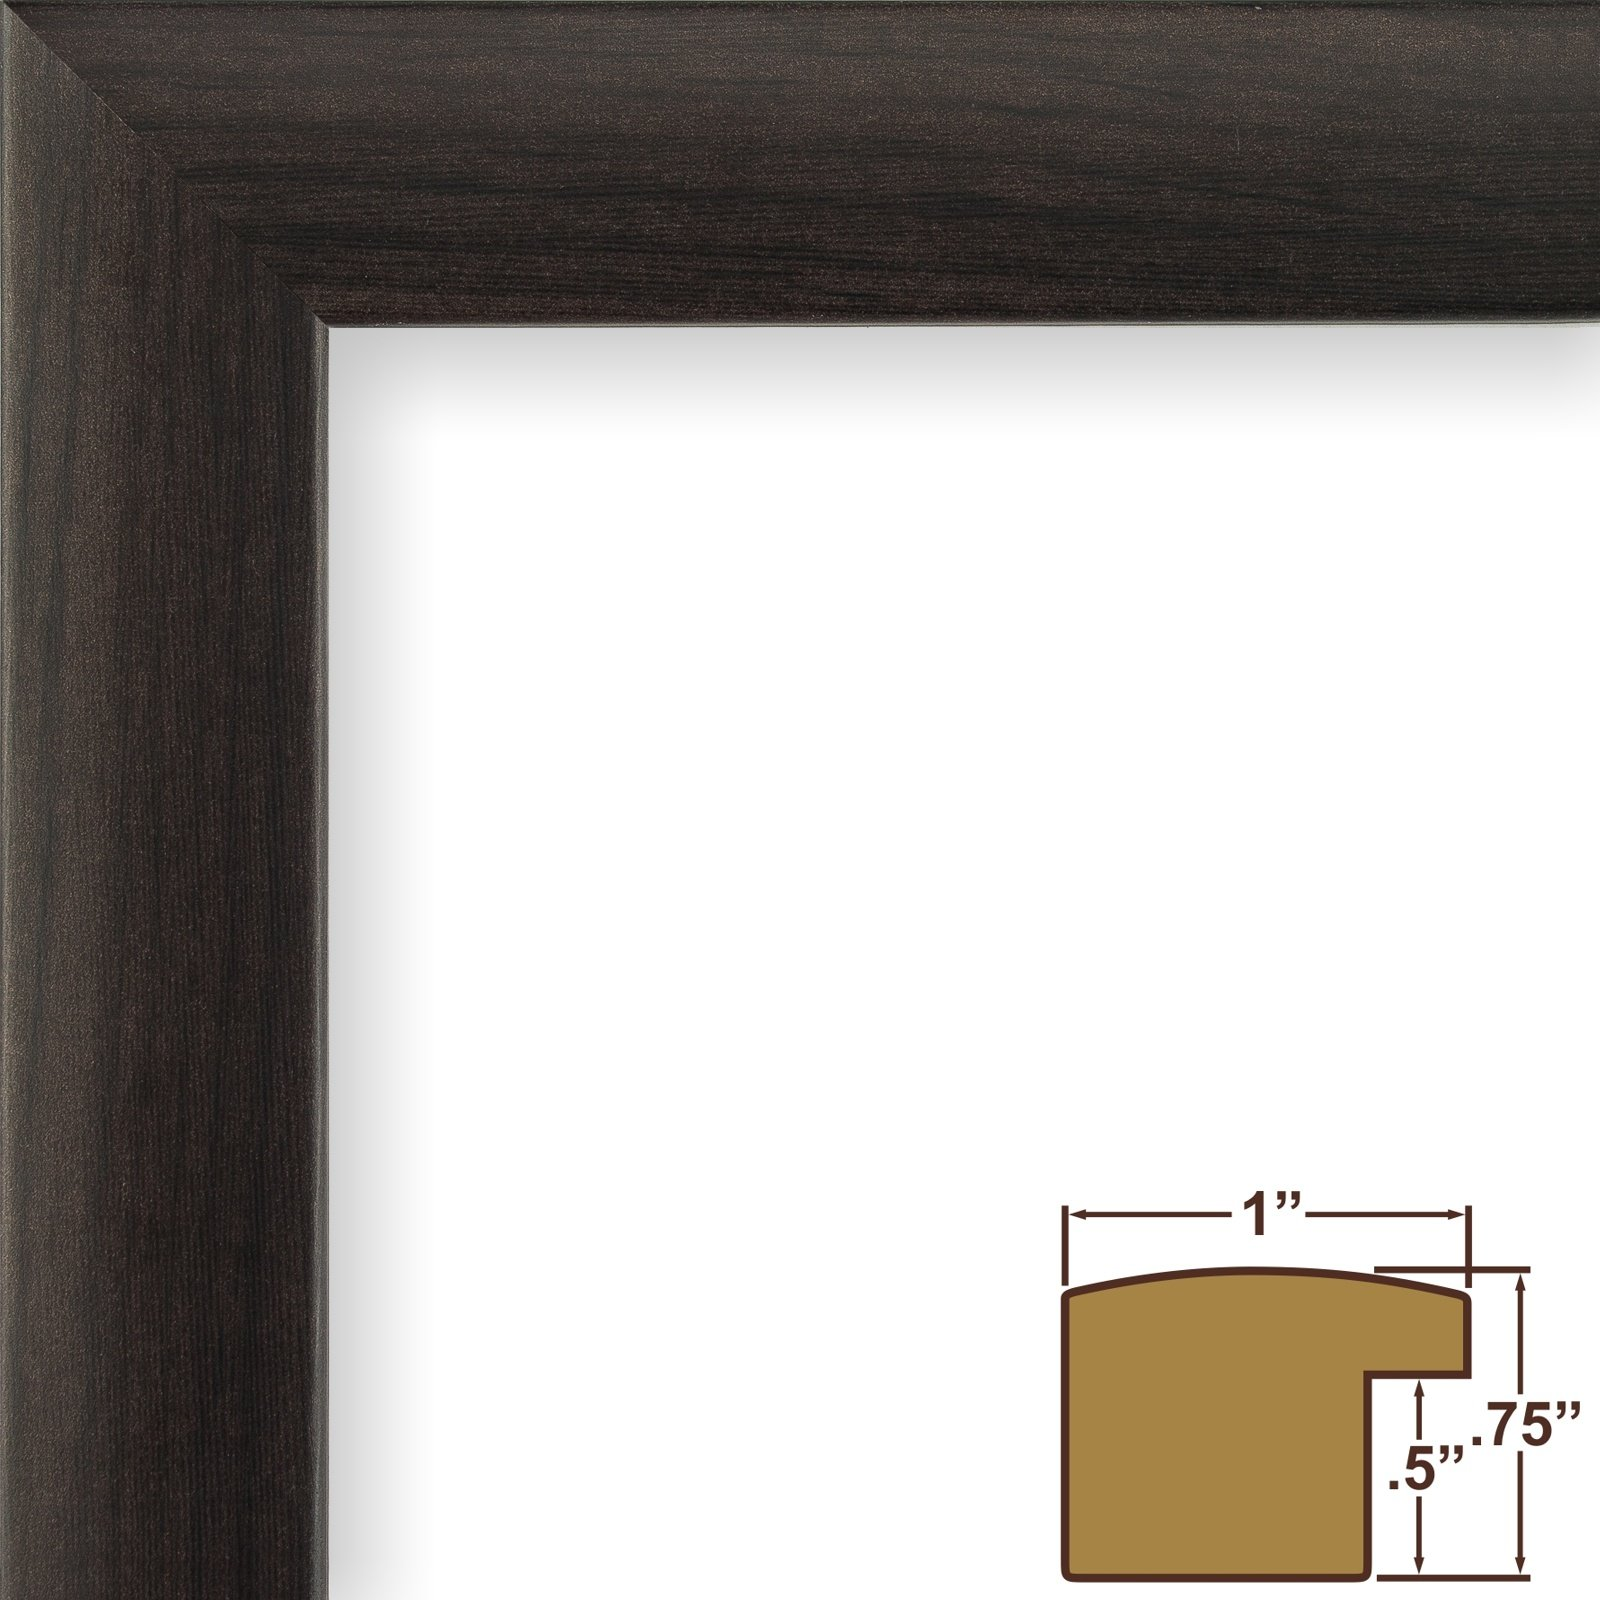 Craig Frames 232477782436AC 1-Inch Wide Picture/Poster Frame in Smooth Wood Grain Finish, 24 by 36-Inch, Brazilian Walnut by Craig Frames (Image #1)